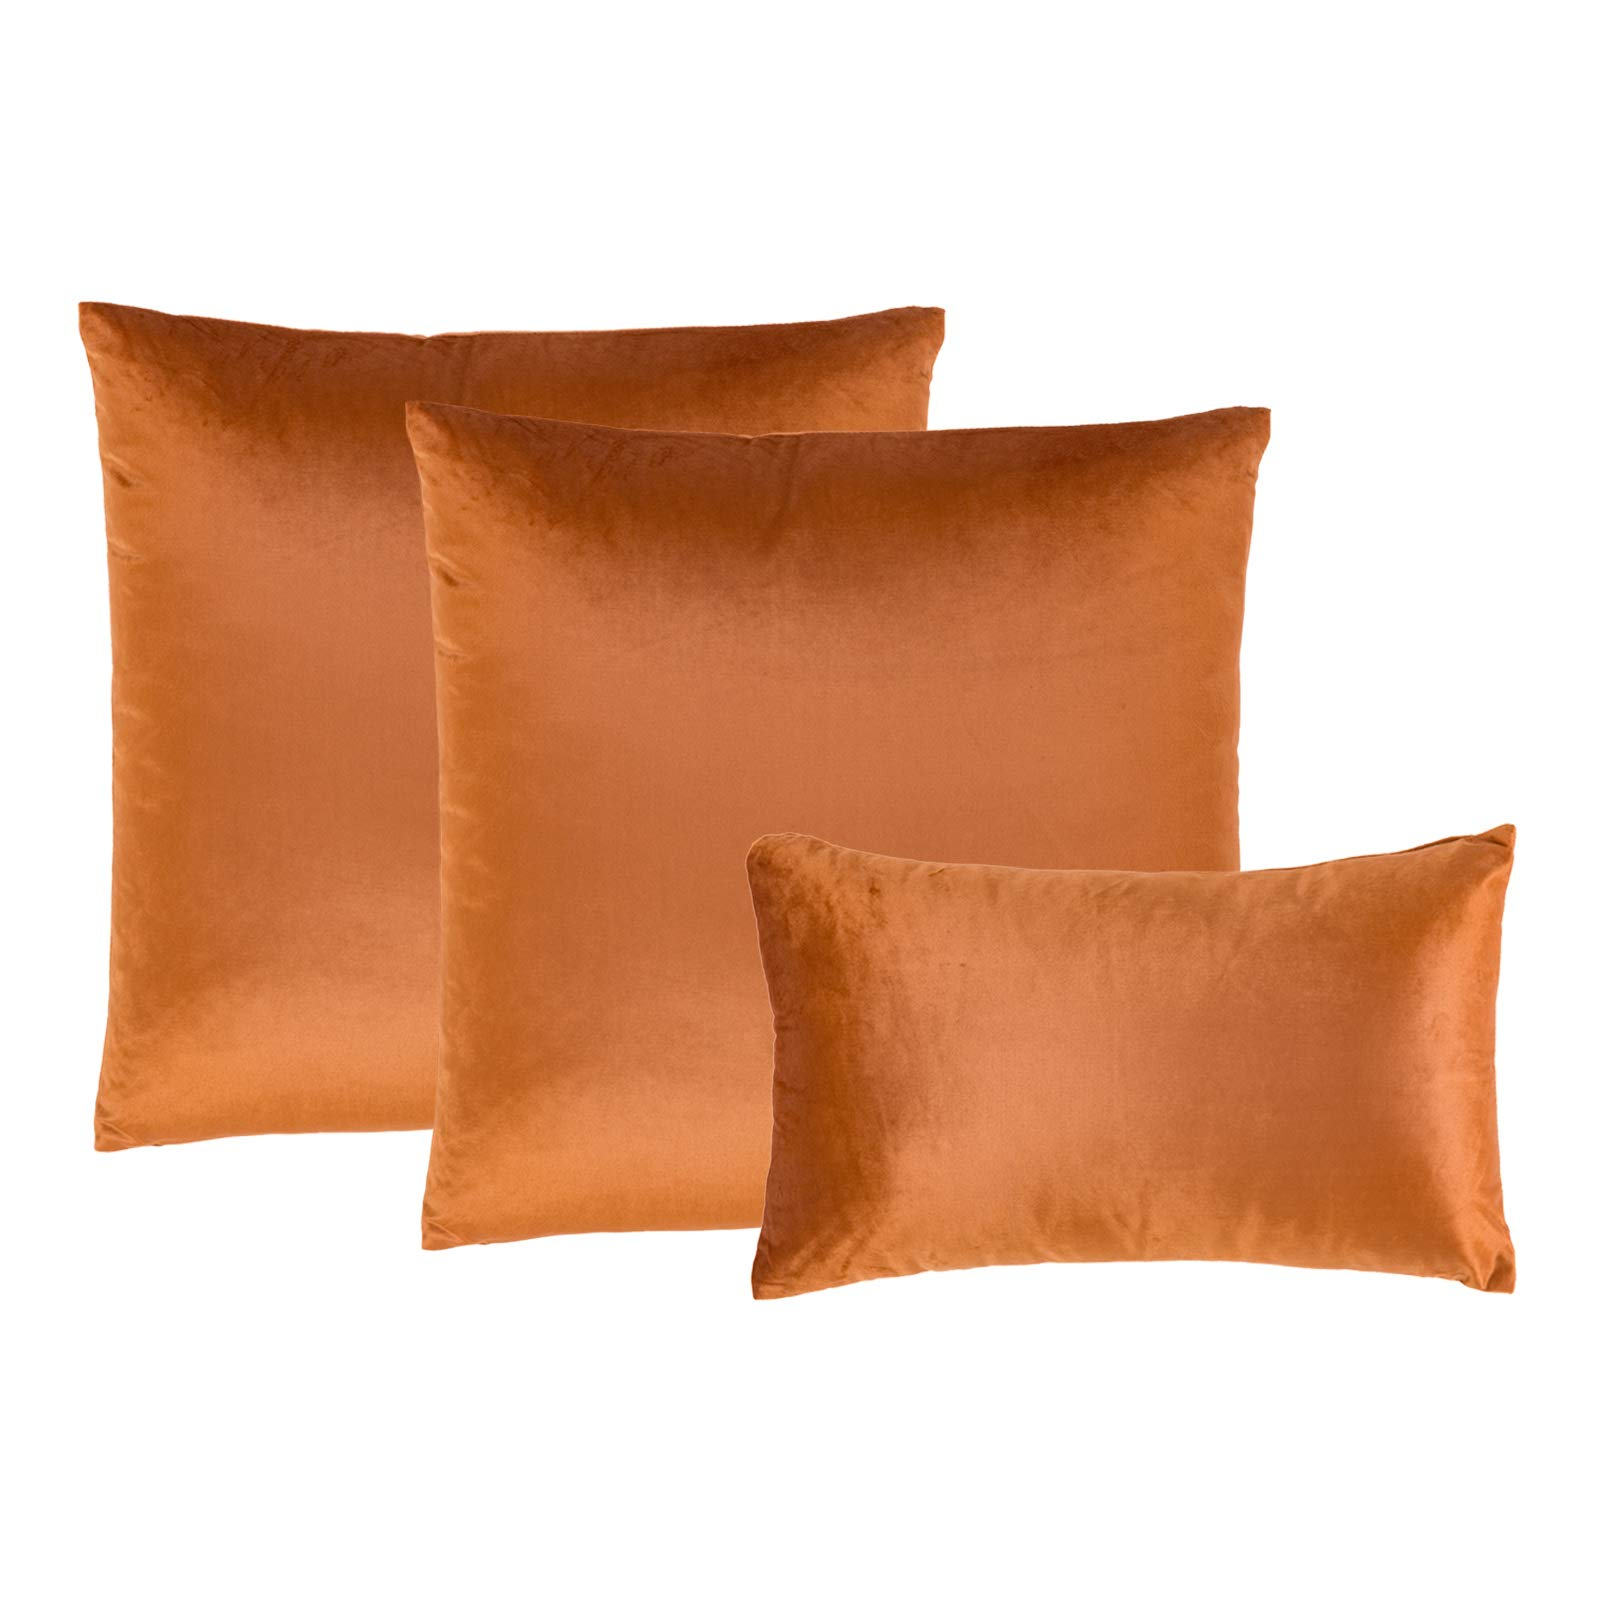 Decomall Super Soft Solid Decorative Square Throw Pillow Covers Set Cushion Case for Sofa Couch Bedroom Living Room, 20x20 inches,Rust, Pack of 2 + 1 of 12x20 inches